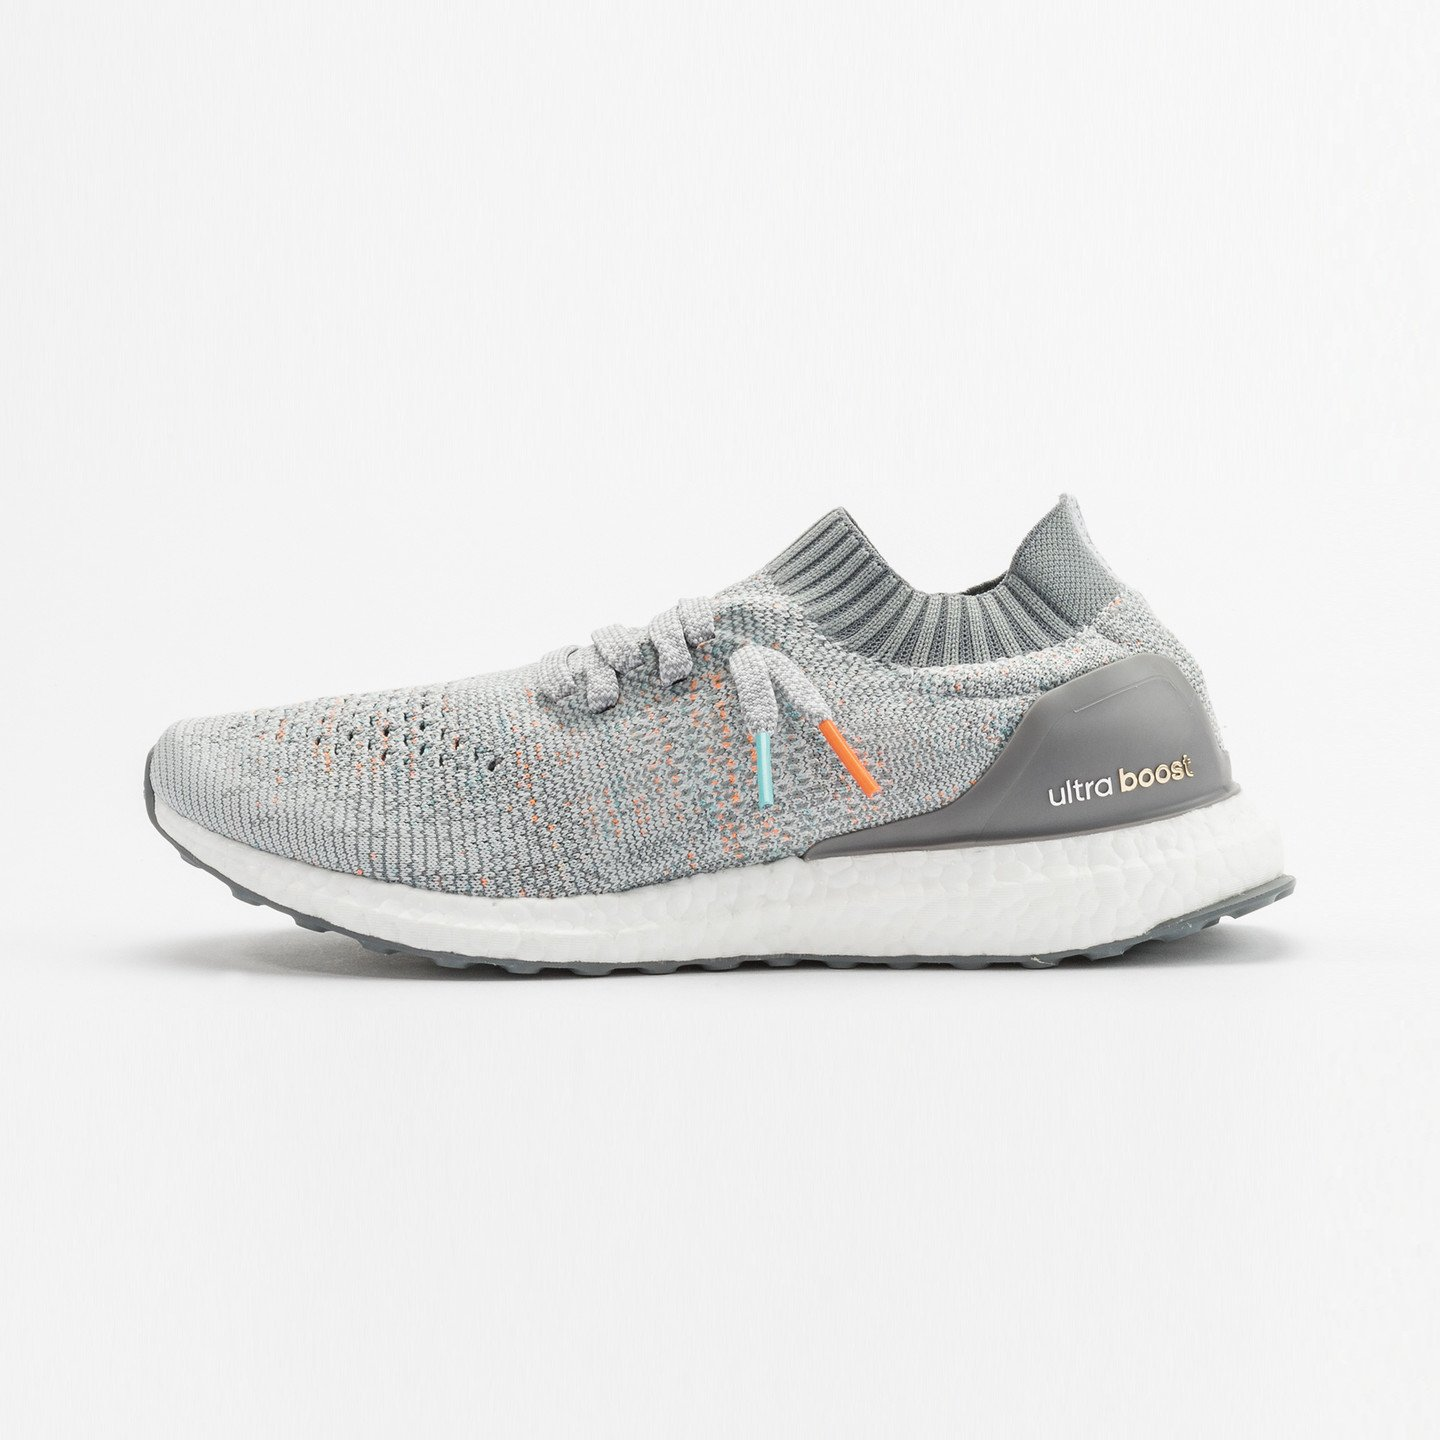 Adidas Ultra Boost Uncaged 'Miami Dolphins' Clear Grey / Mid Grey / Orange / Aqua BB4489-41.33